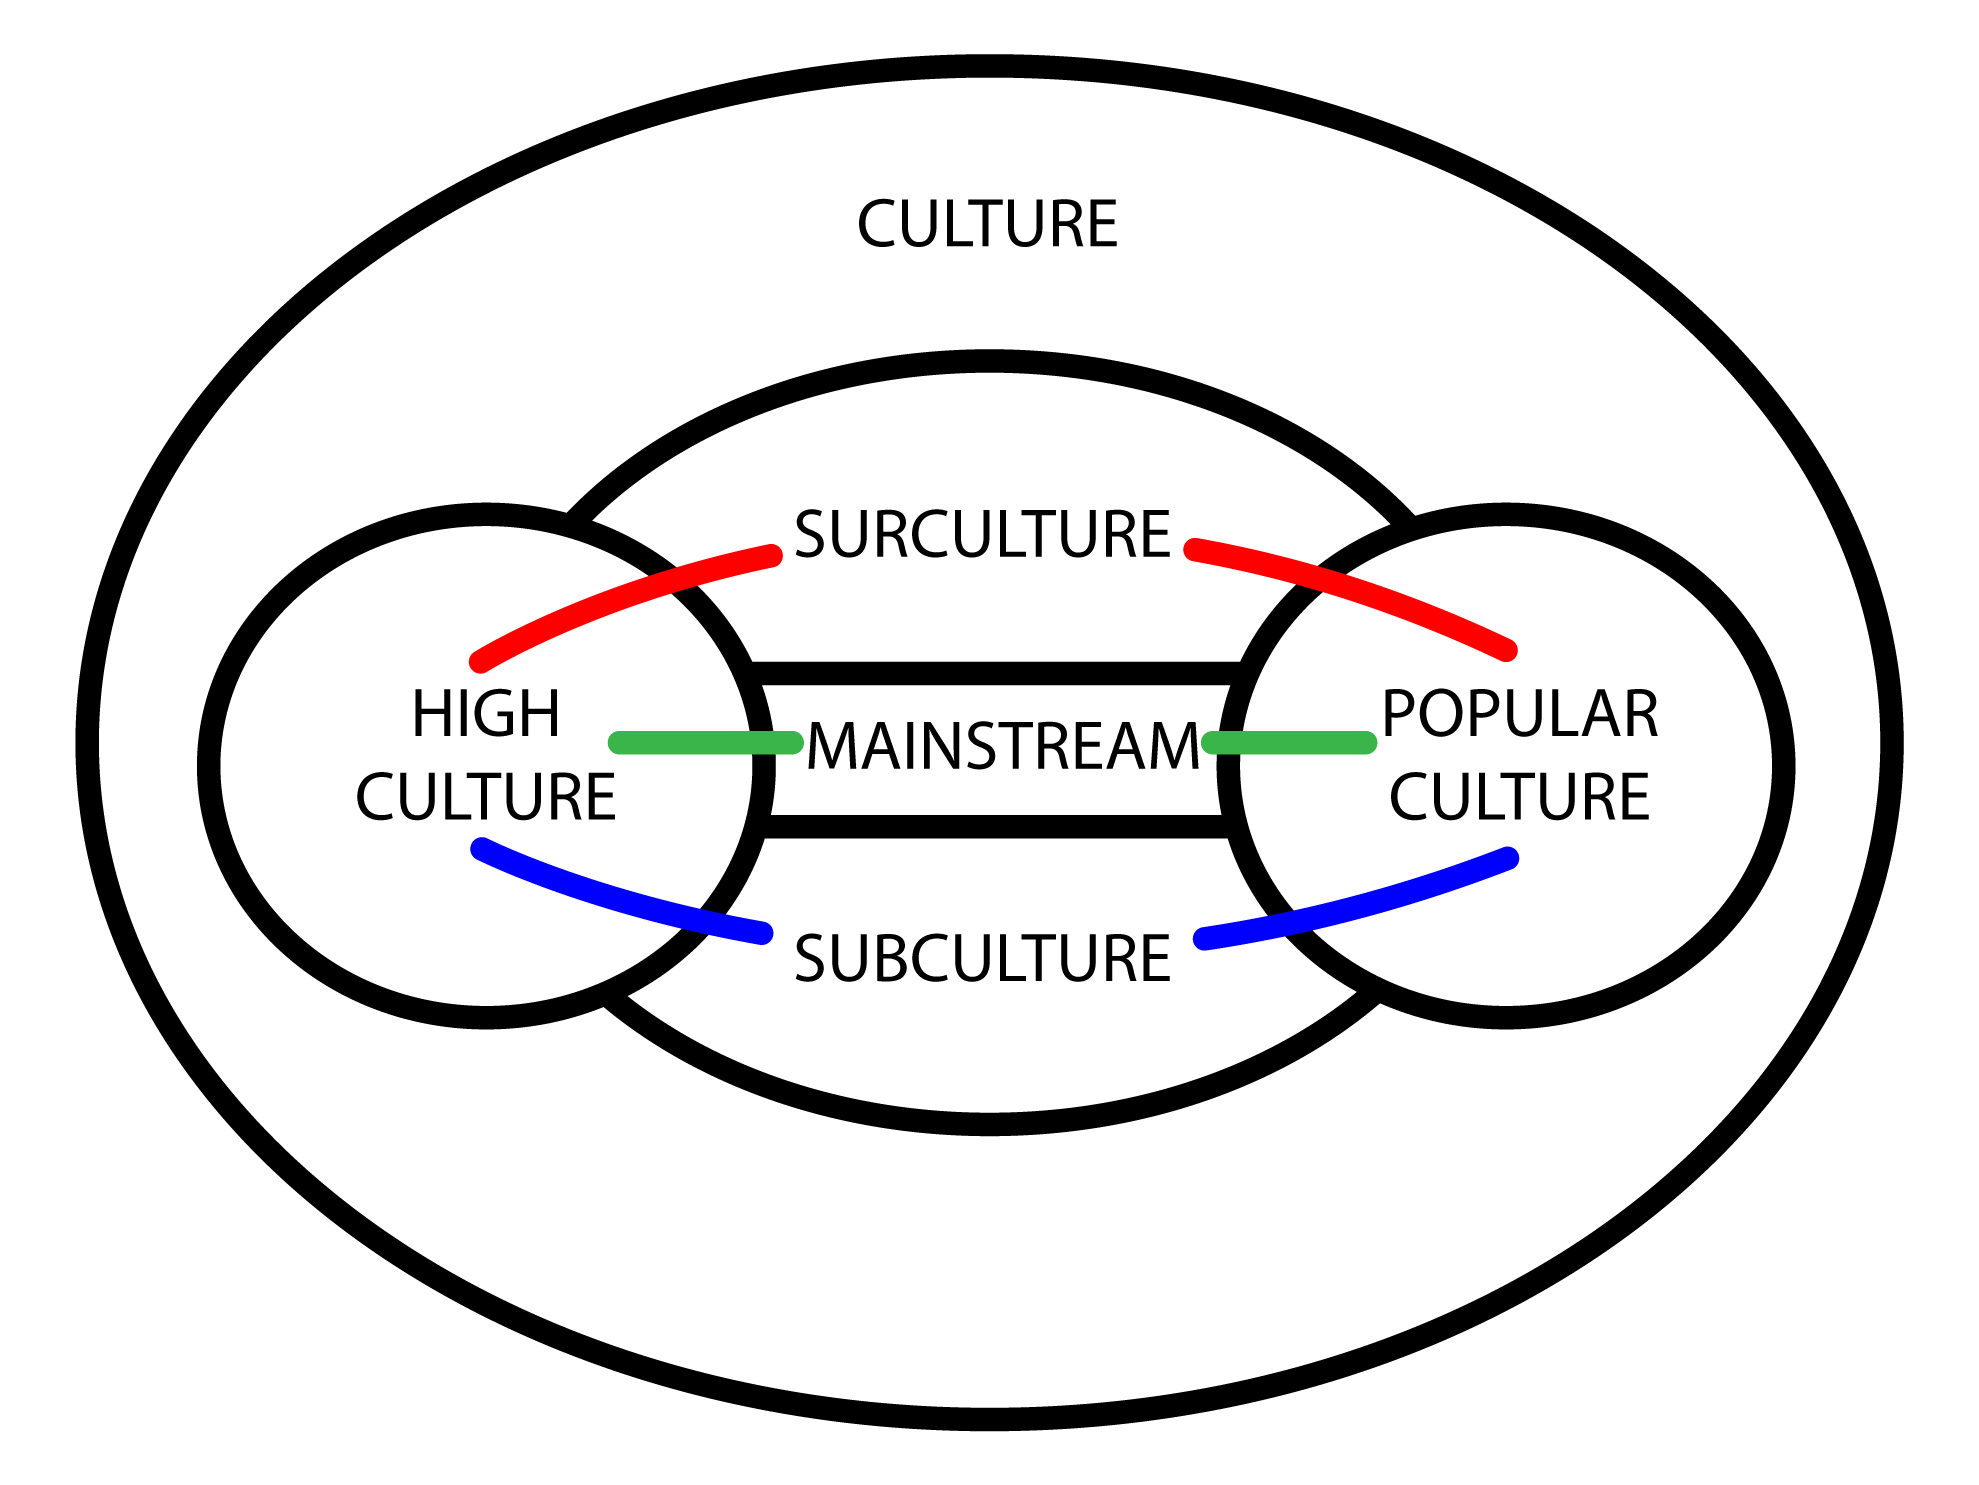 subculture the meaning of style writework diagram presenting the context of surculture surculture is a cultural force complementary to subculture interfacing